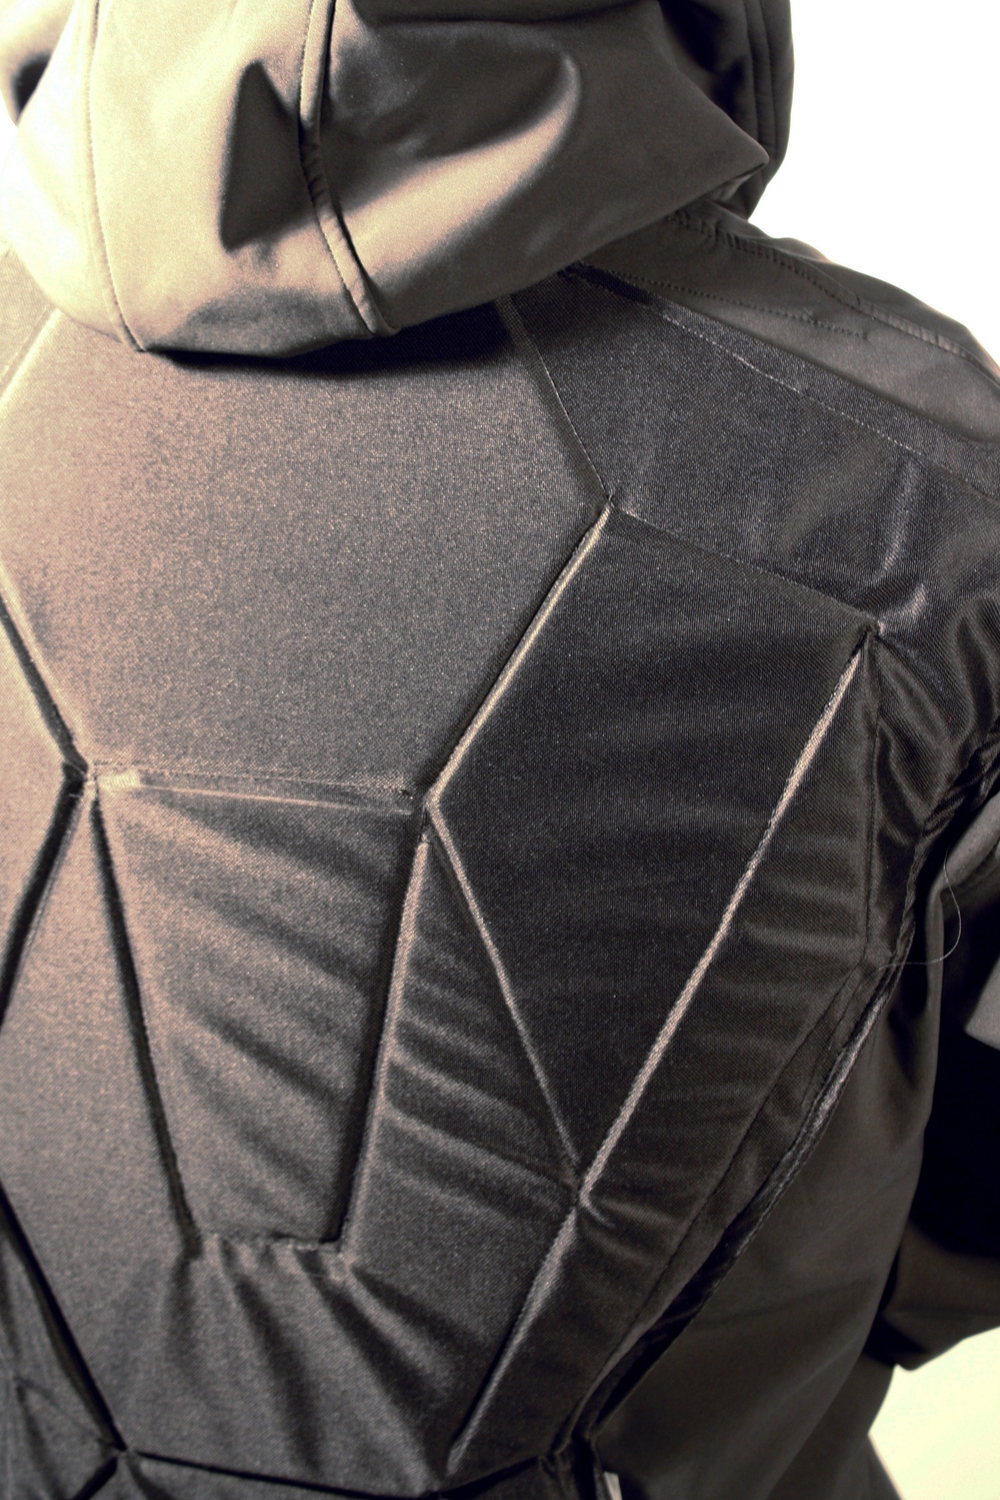 backdetail.jpg